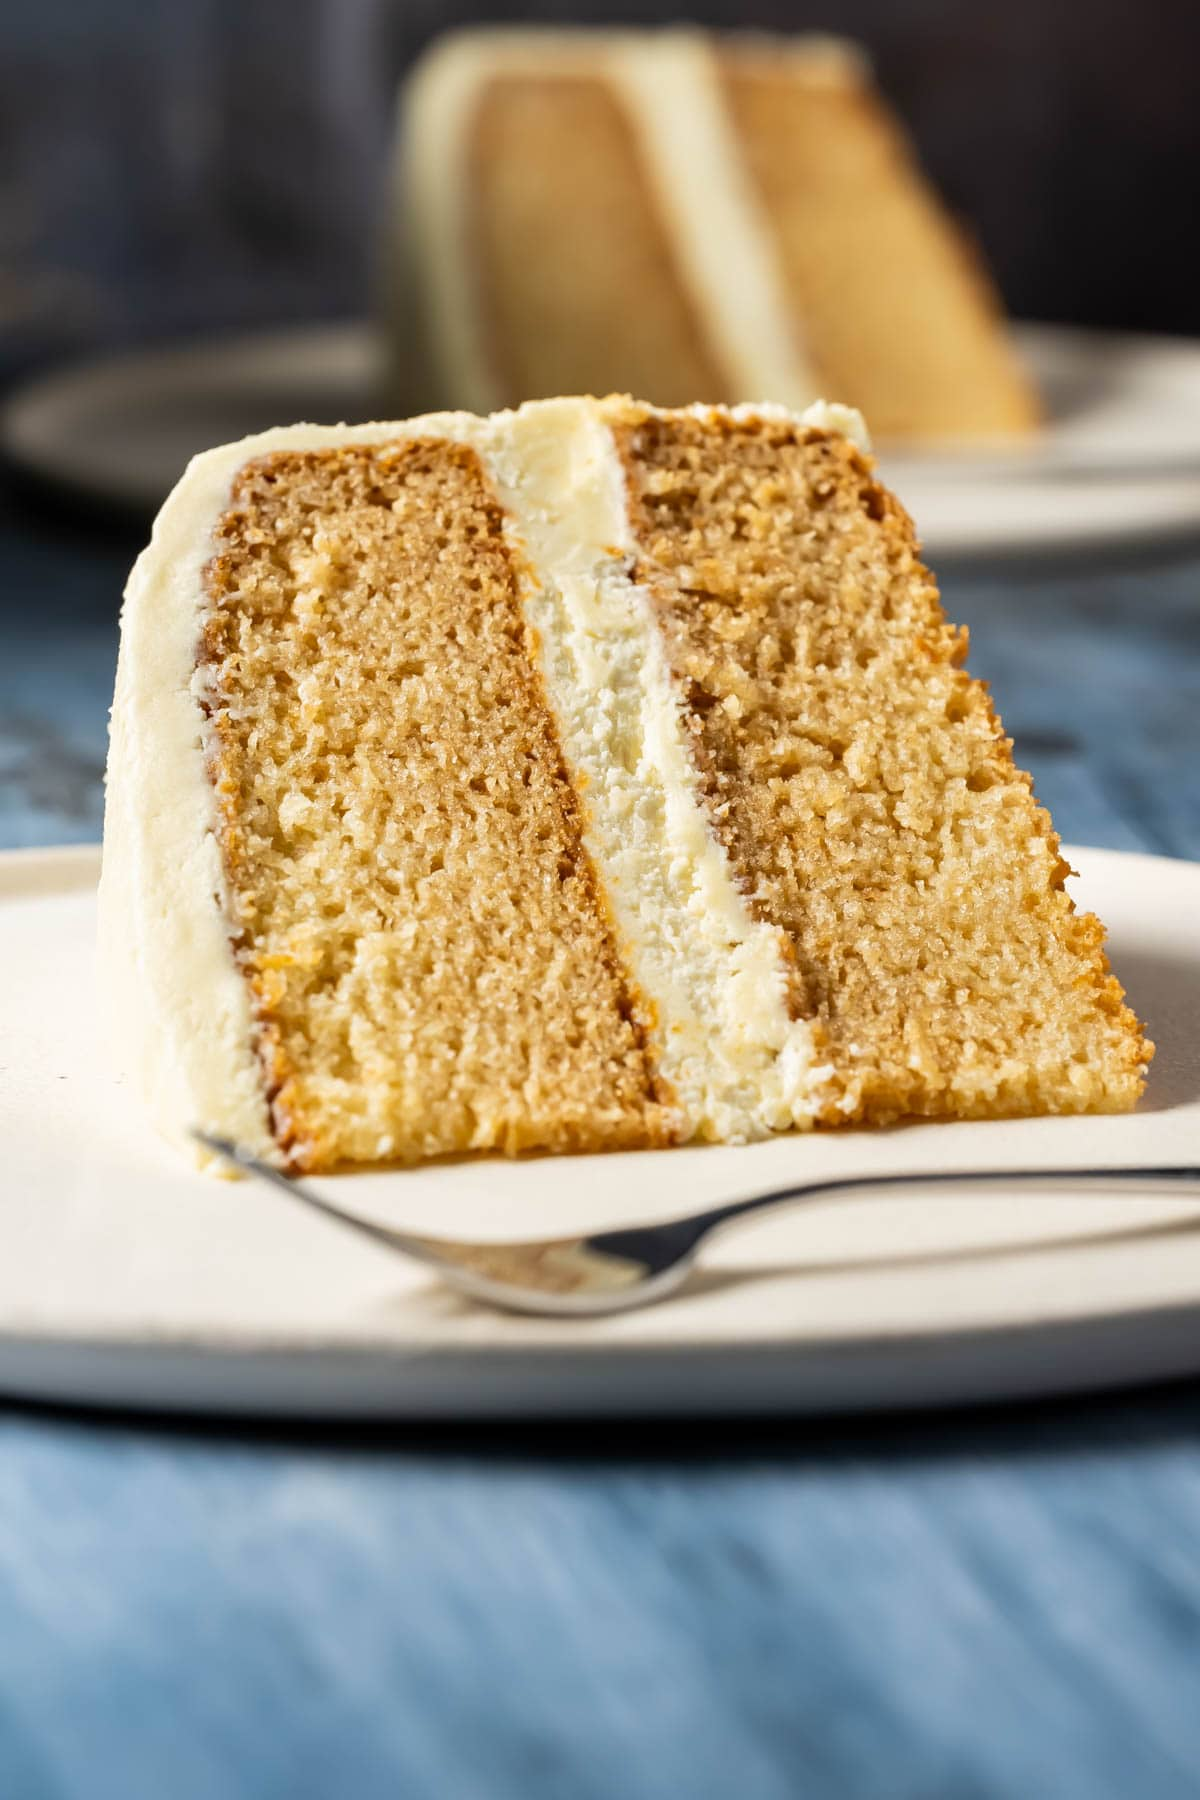 Slice of eggless vanilla cake on a white plate with a cake fork.